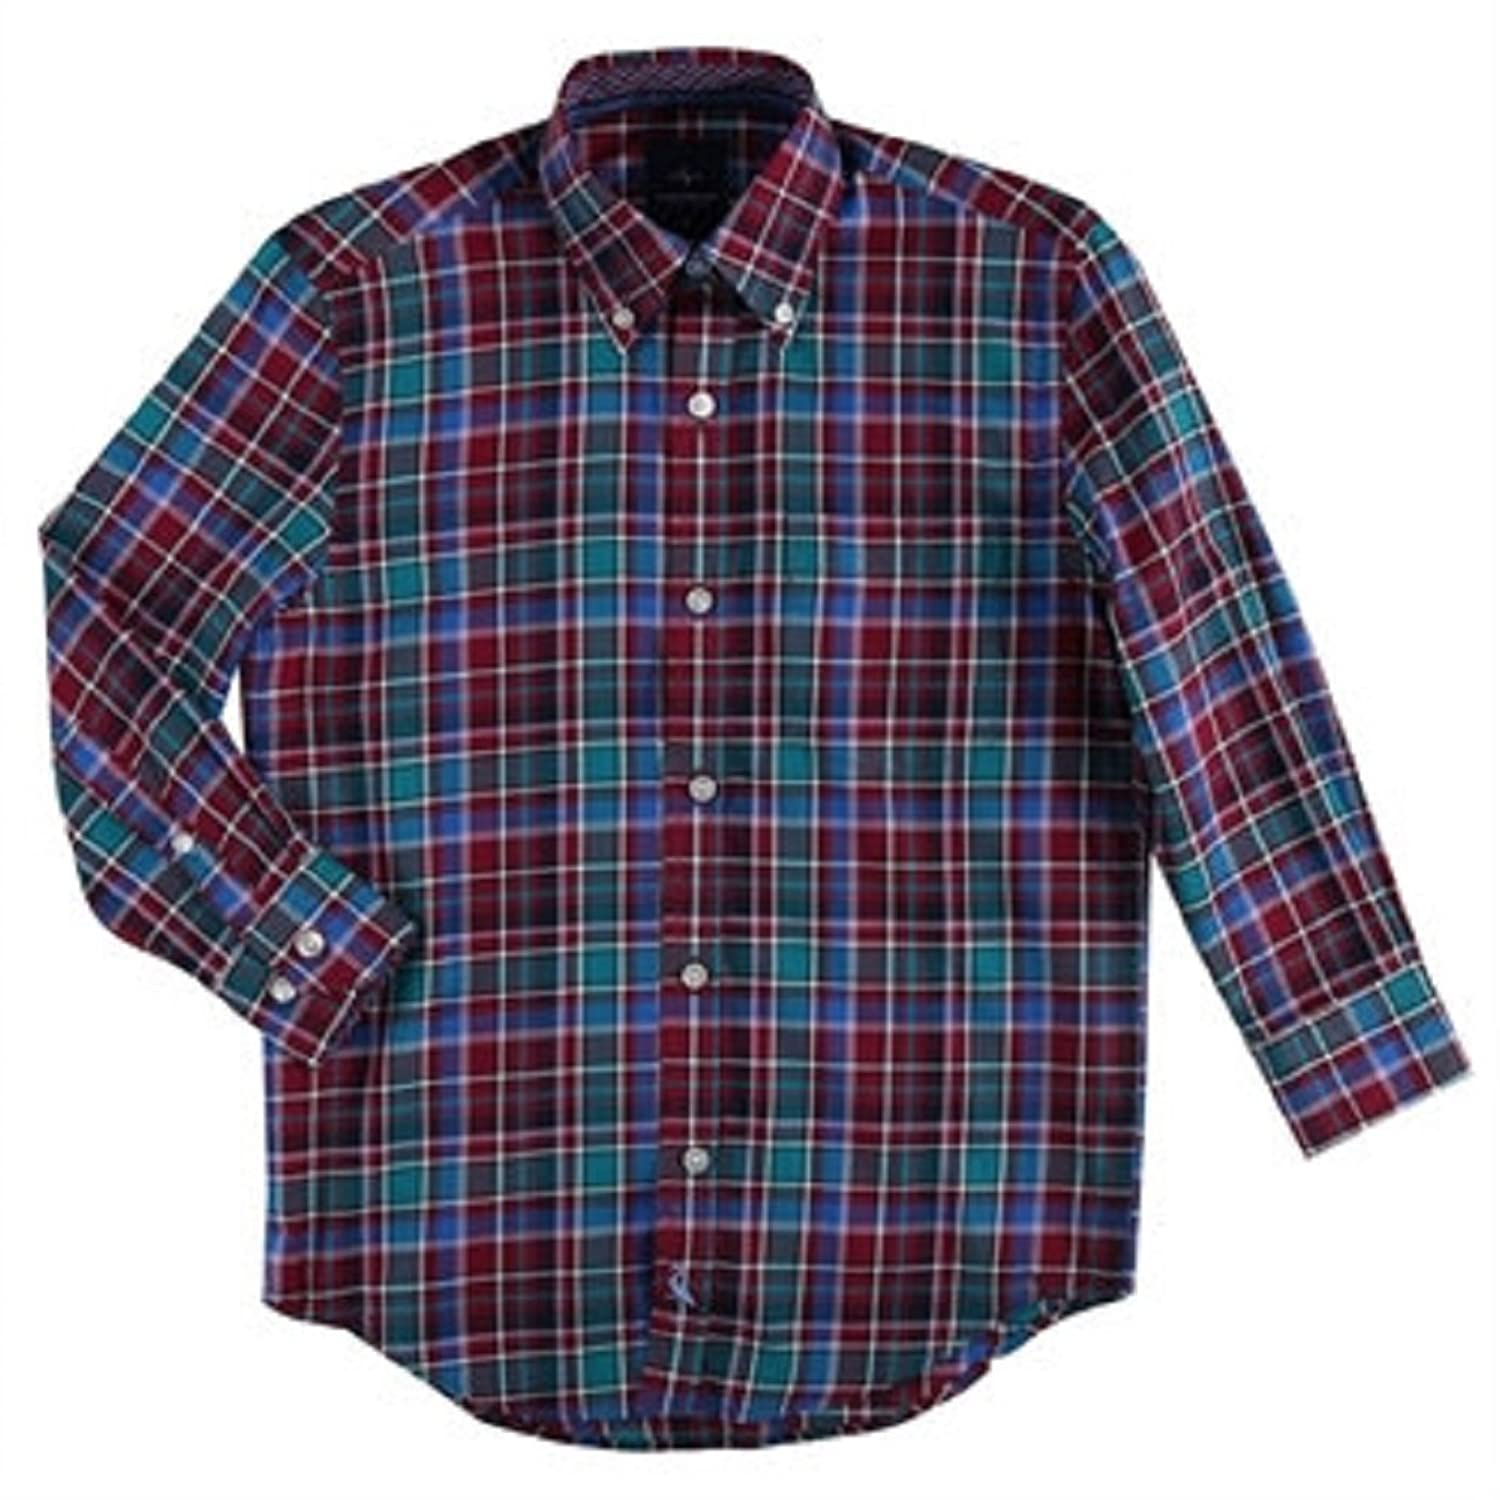 top TailorByrd Boys 8-20 Twill Plaid Sport Shirt 18 for sale